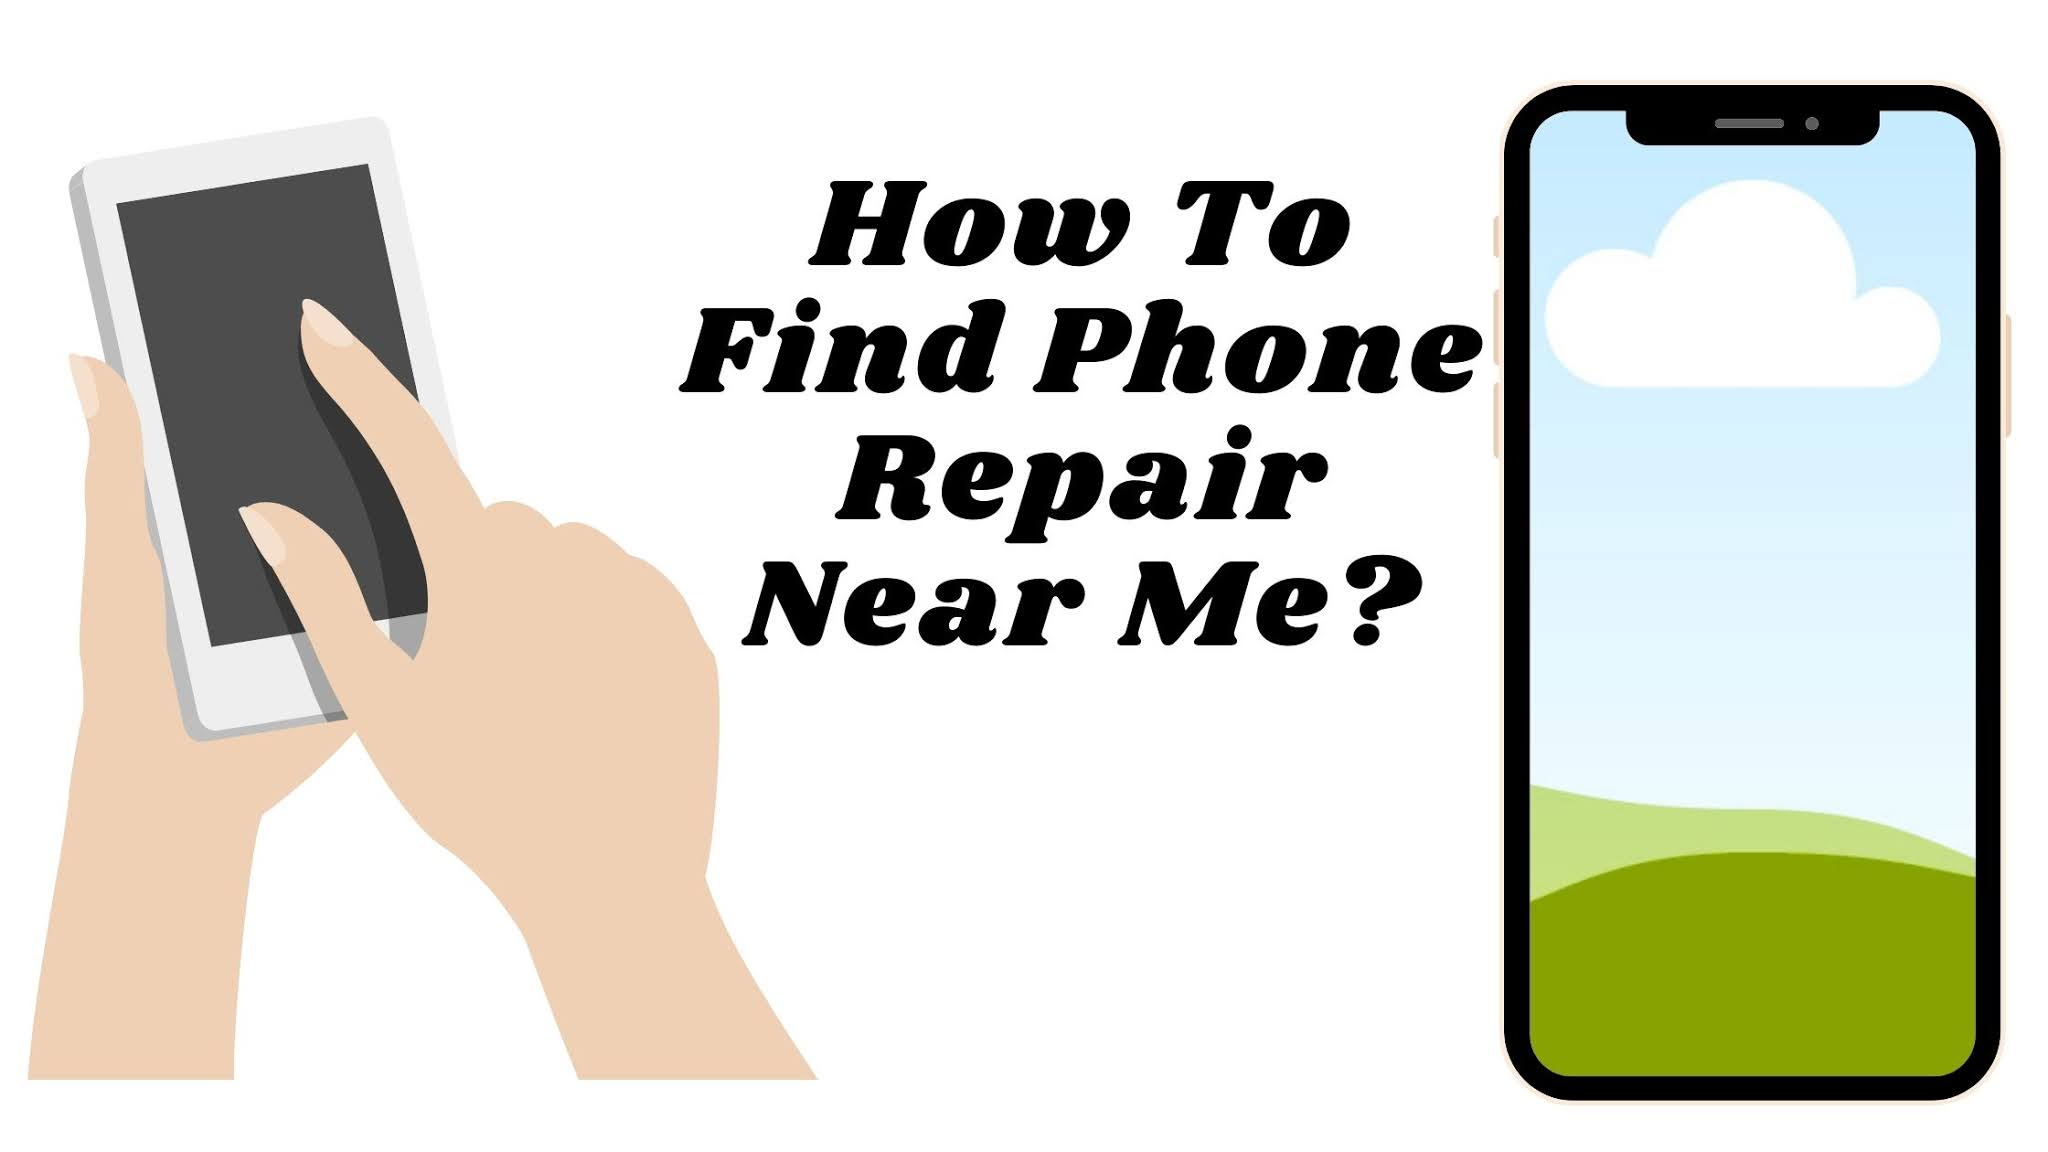 How To Find Phone Repair Near Me?